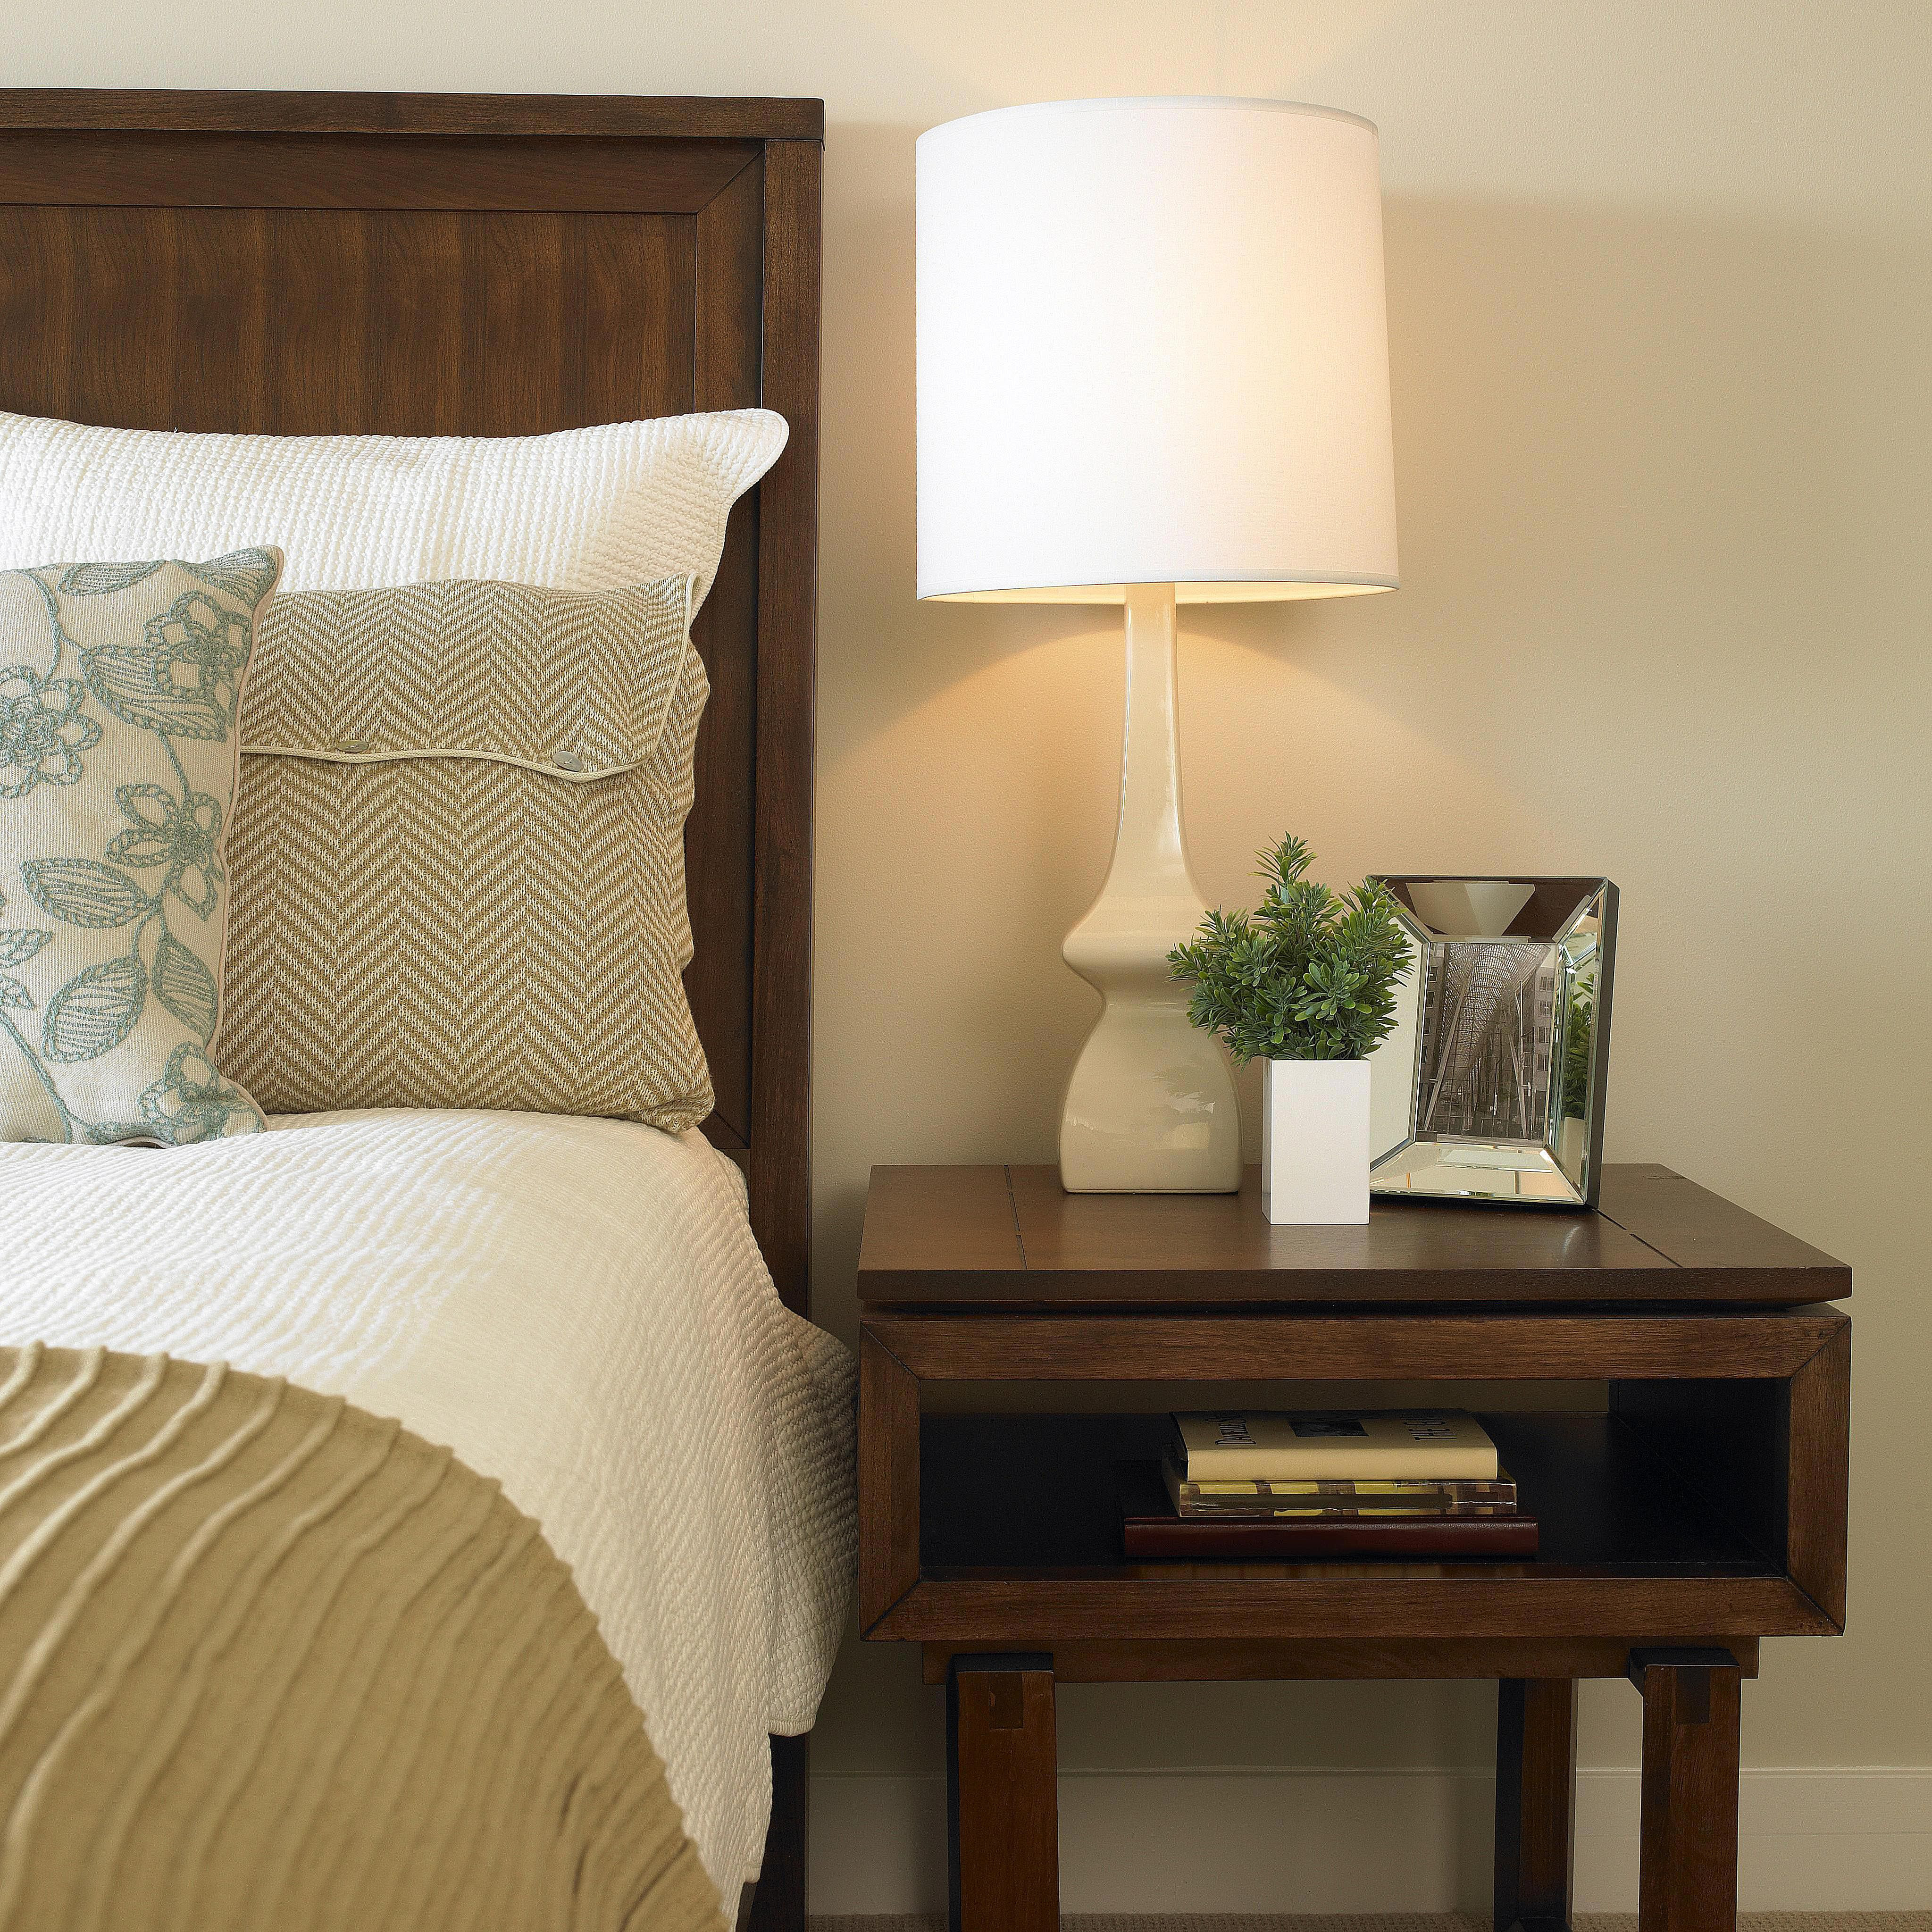 Best ideas about Bedroom Table Lamps . Save or Pin How to Choose a Lamp and the Right Size Lampshade Now.